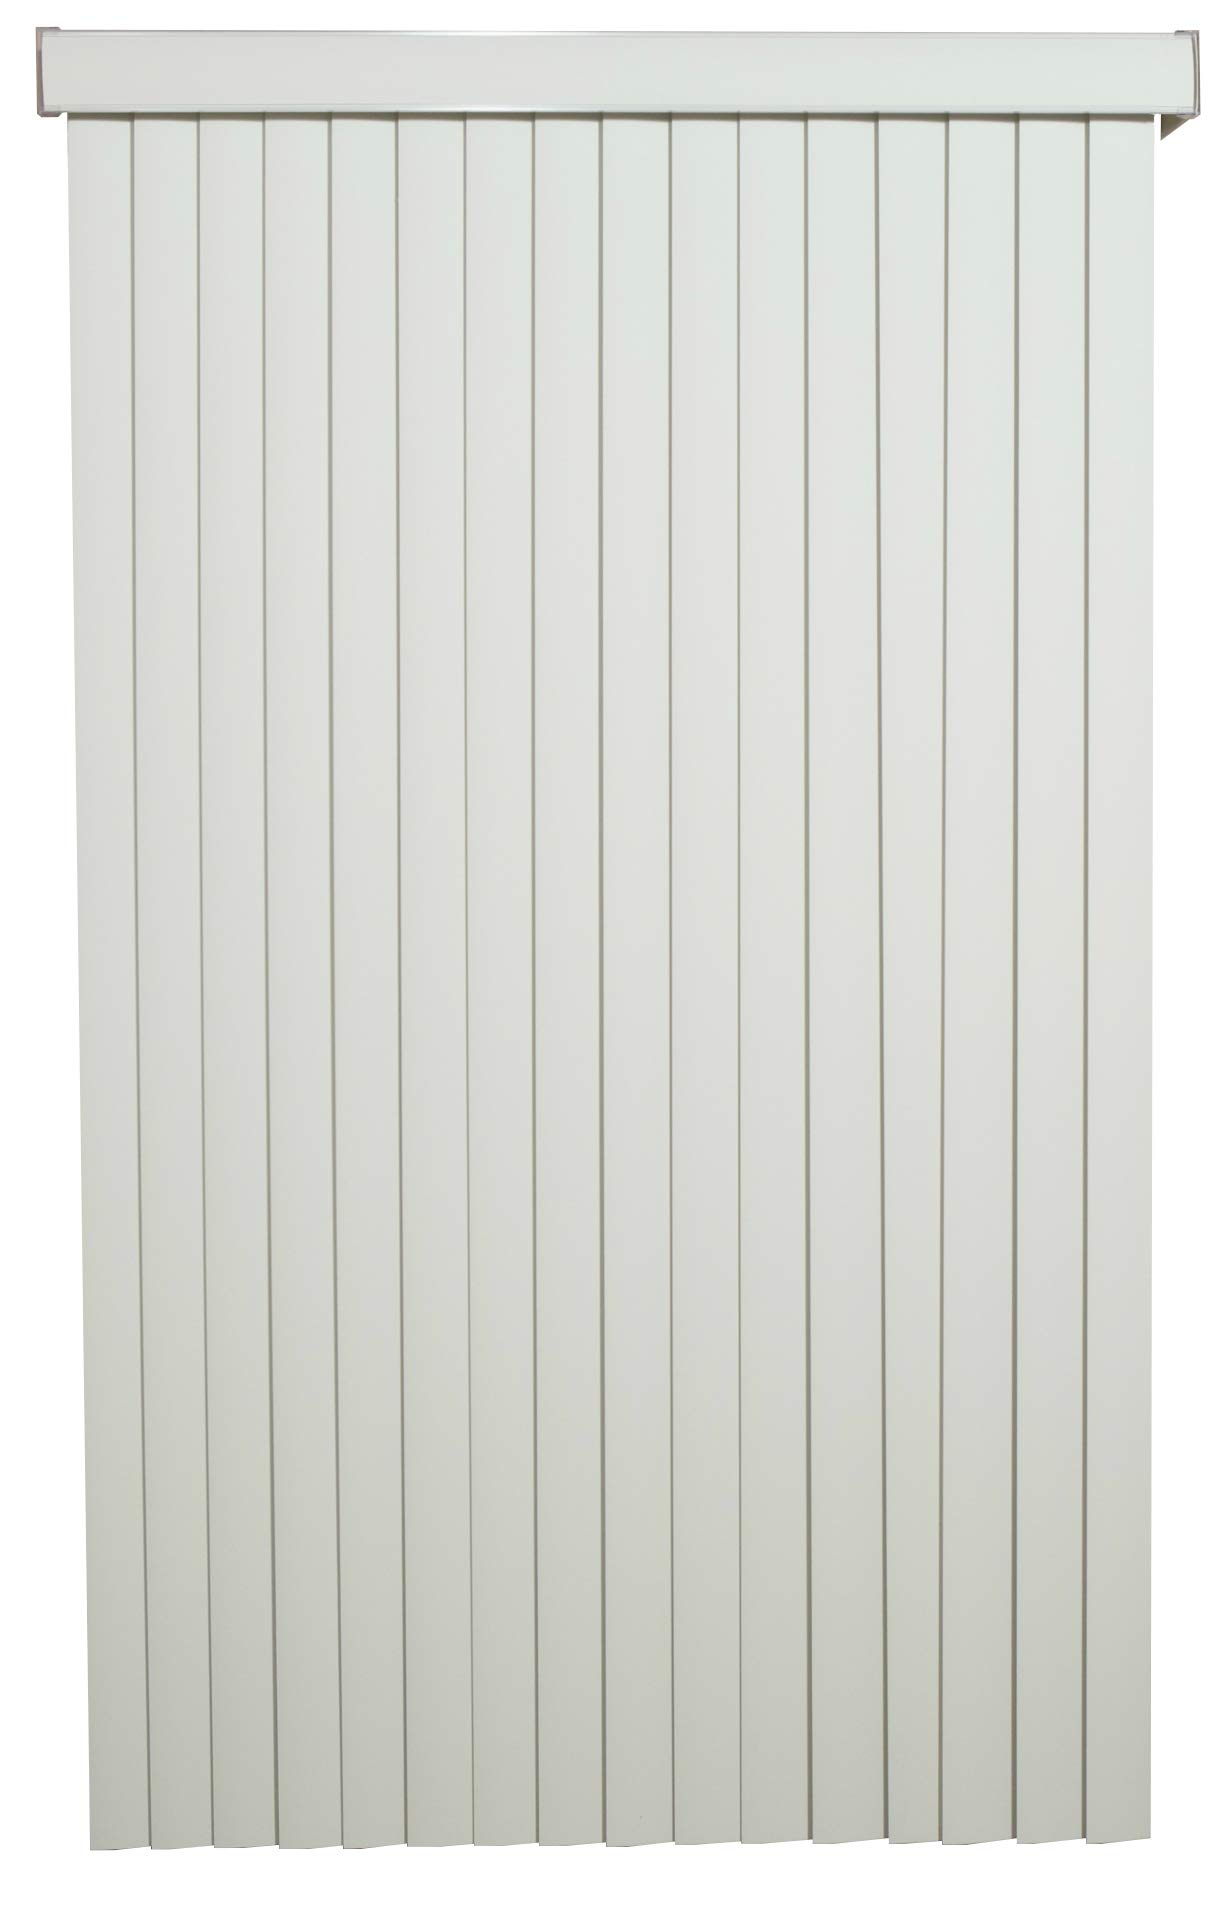 Off White Solid Vinyl Cordless Vertical Blinds with 3-1/2'' Smooth Vanes 70'' Wide x 60'' Long, USA by BlindDen